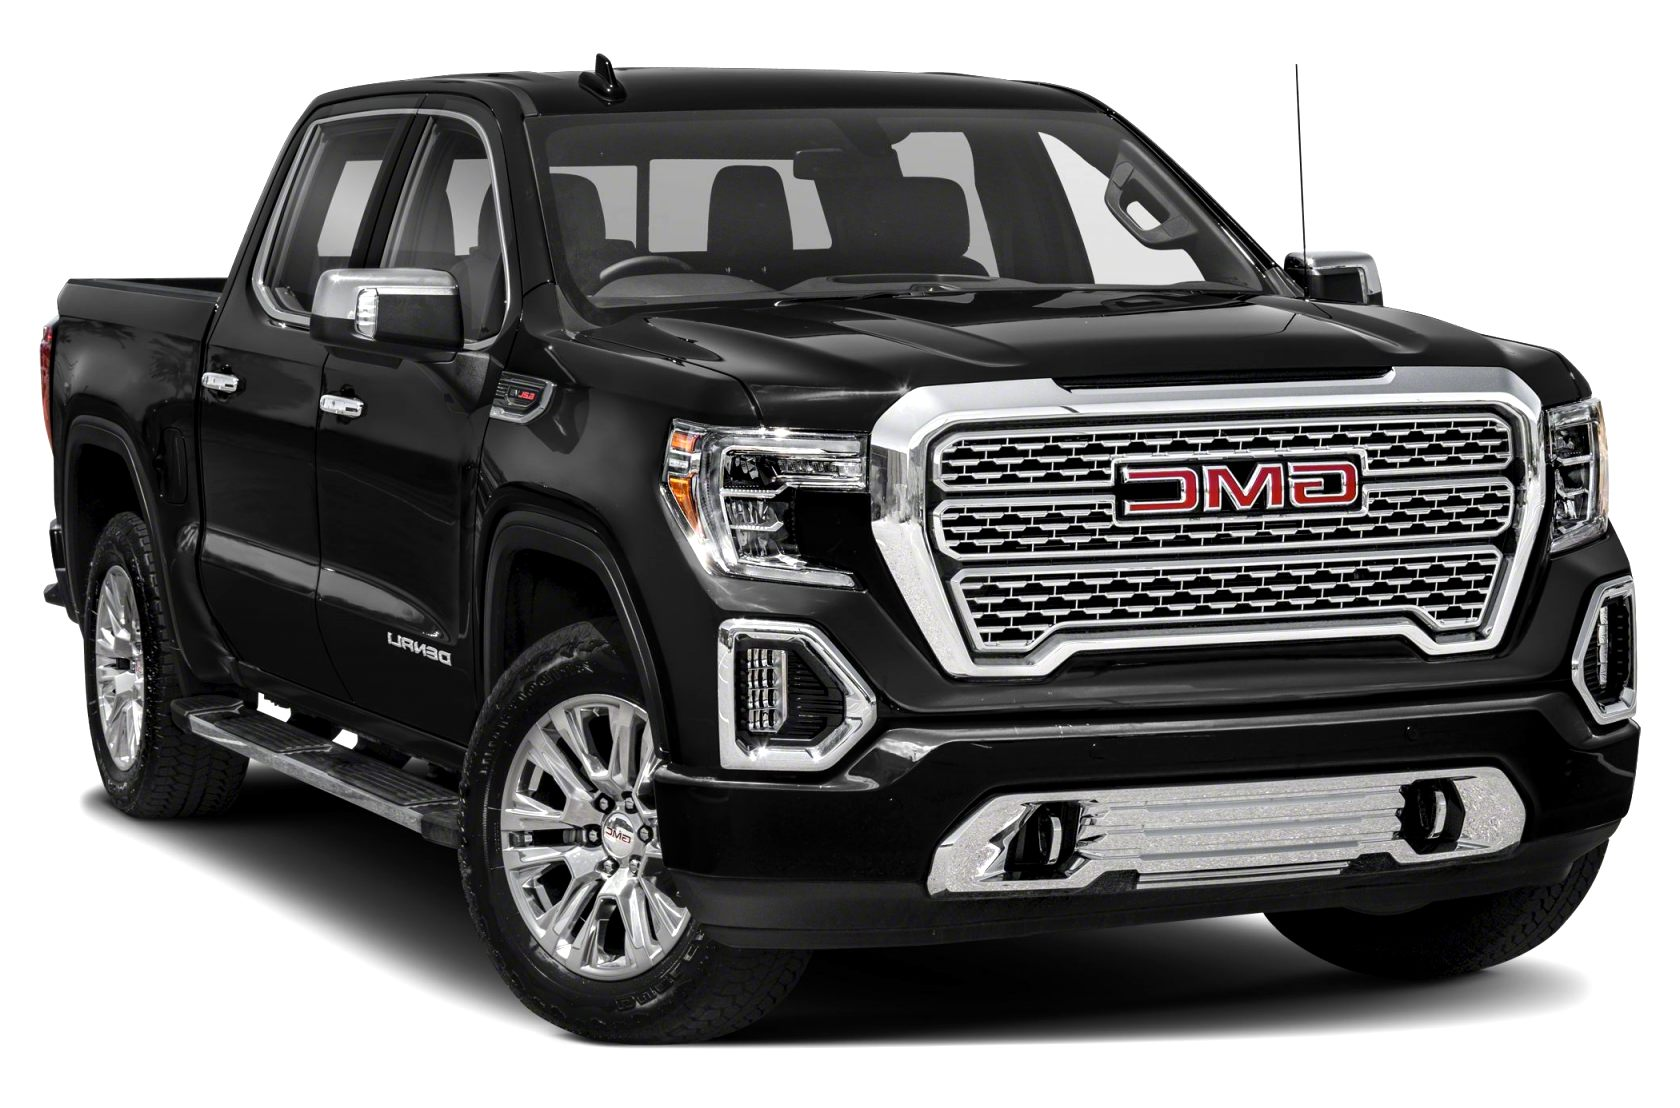 GMC denali 2020 for sale Price and Review